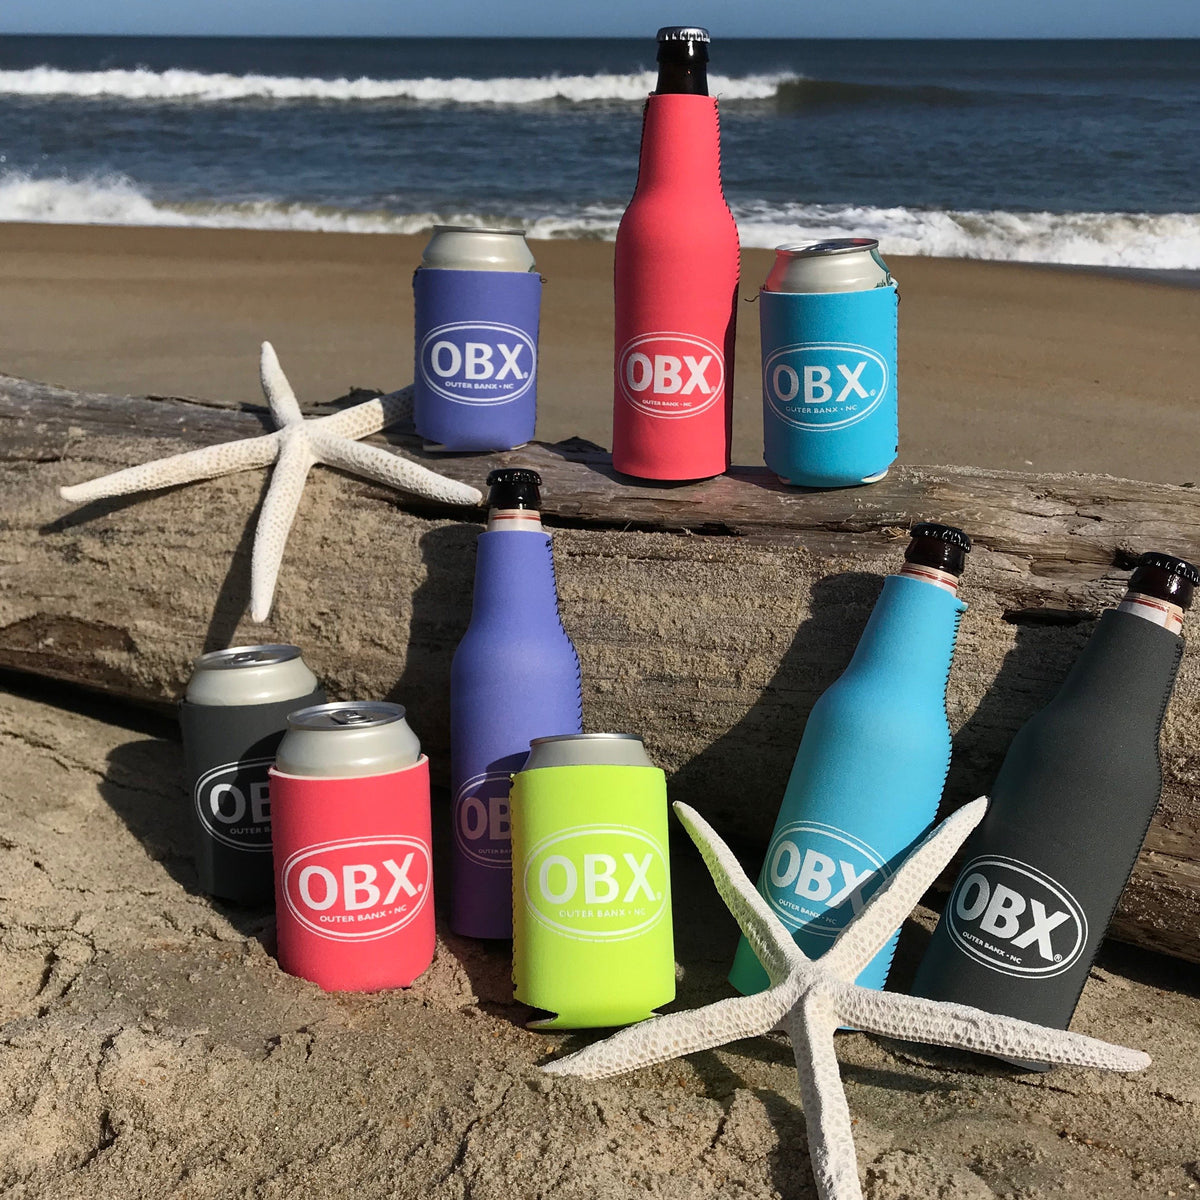 OUTER BANKS GIFTS | Outer Banks Souvenirs at Beach Treasures in Duck